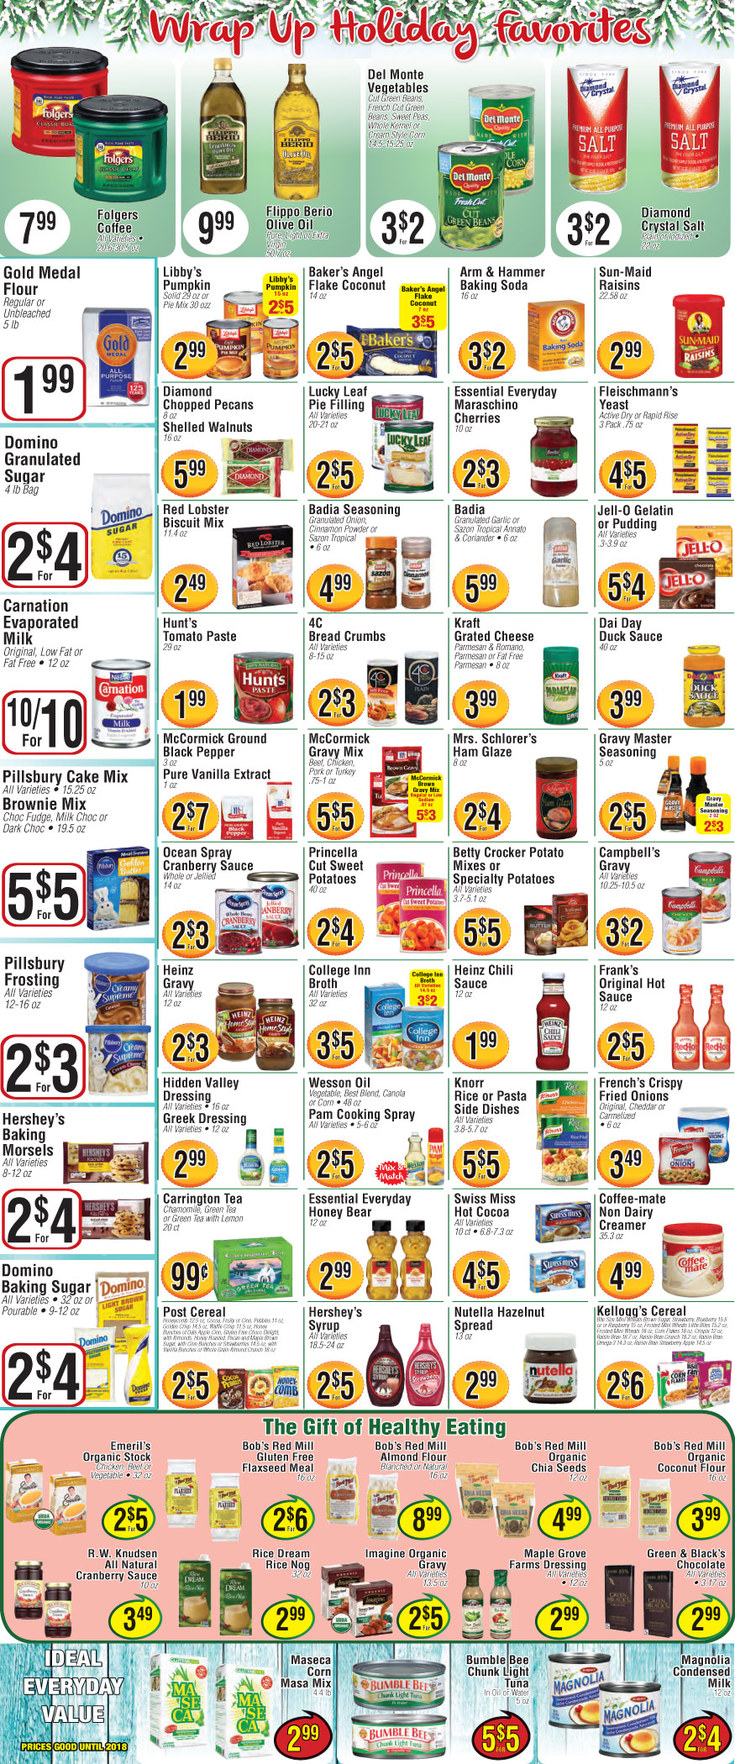 Find grocery deals near me